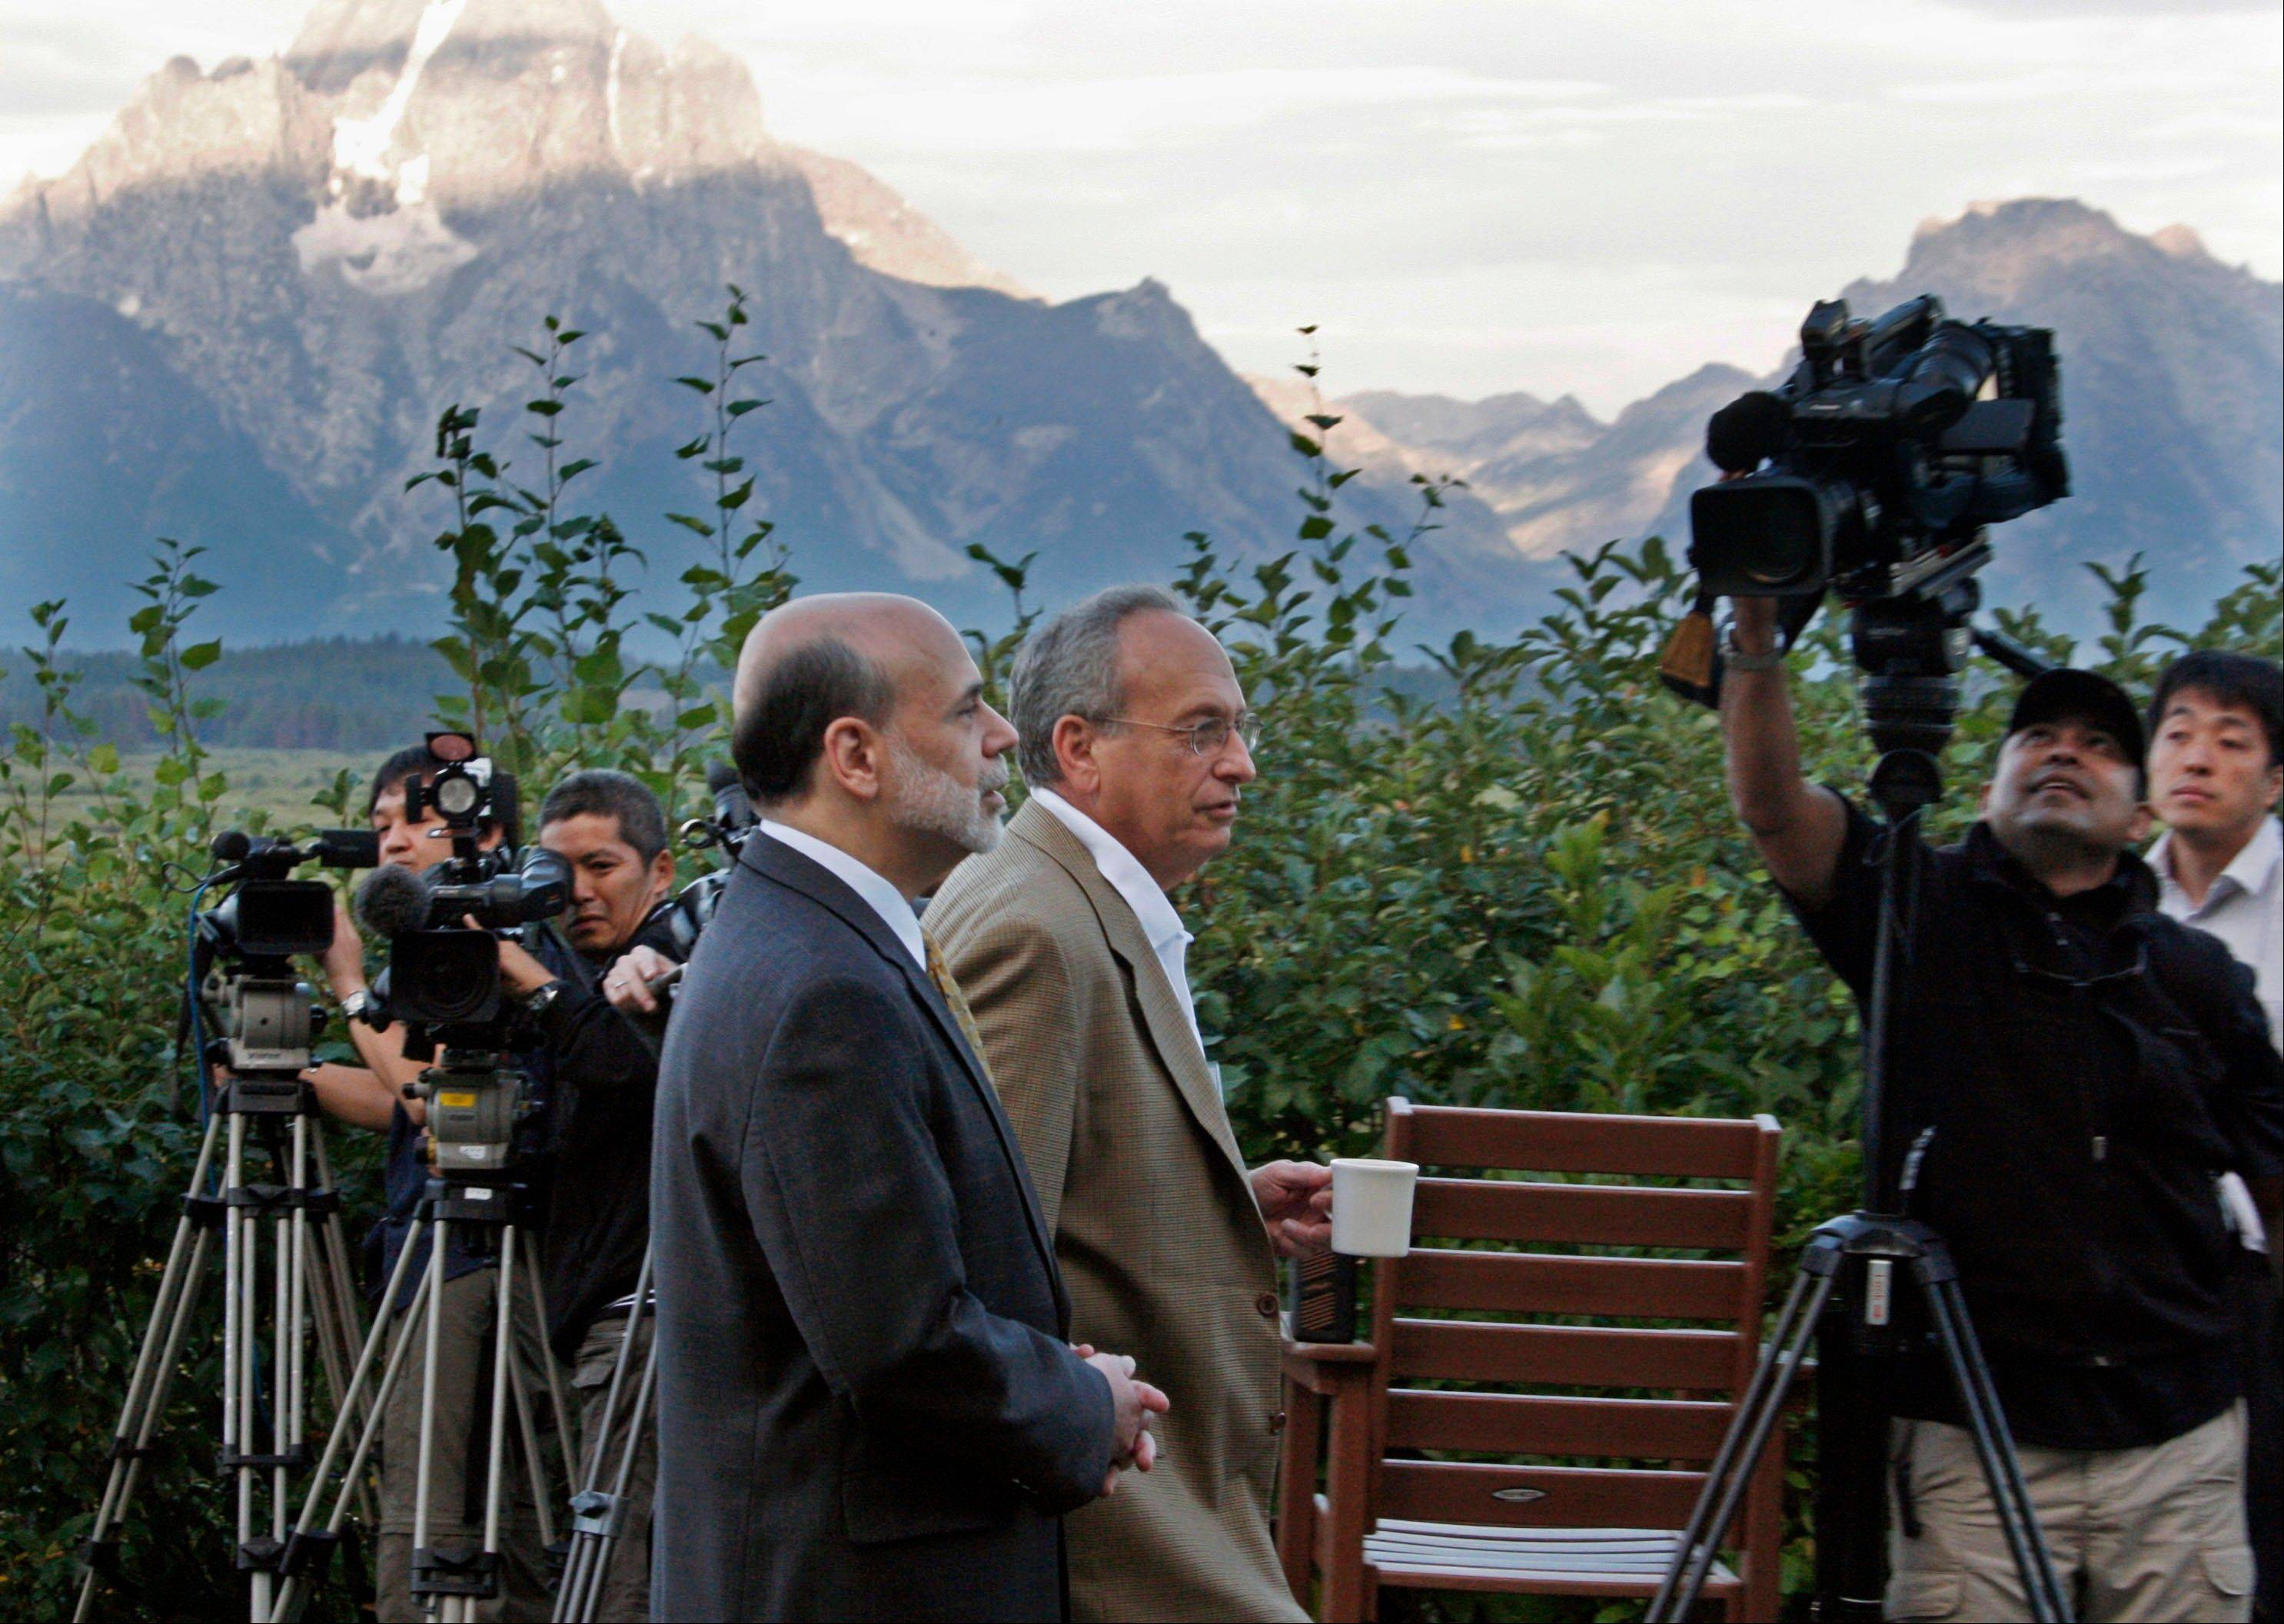 Federal Reserve chairman Ben Bernanke, left, and Donald L. Kohn, governor of the Federal Reserve Bank of Dallas, walk along the veranda of the Jackson Lake Lodge with the Grand Tetons in the distance, at the start of the annual Federal Reserve conference in Jackson, Wyo., on Aug. 27, 2010.